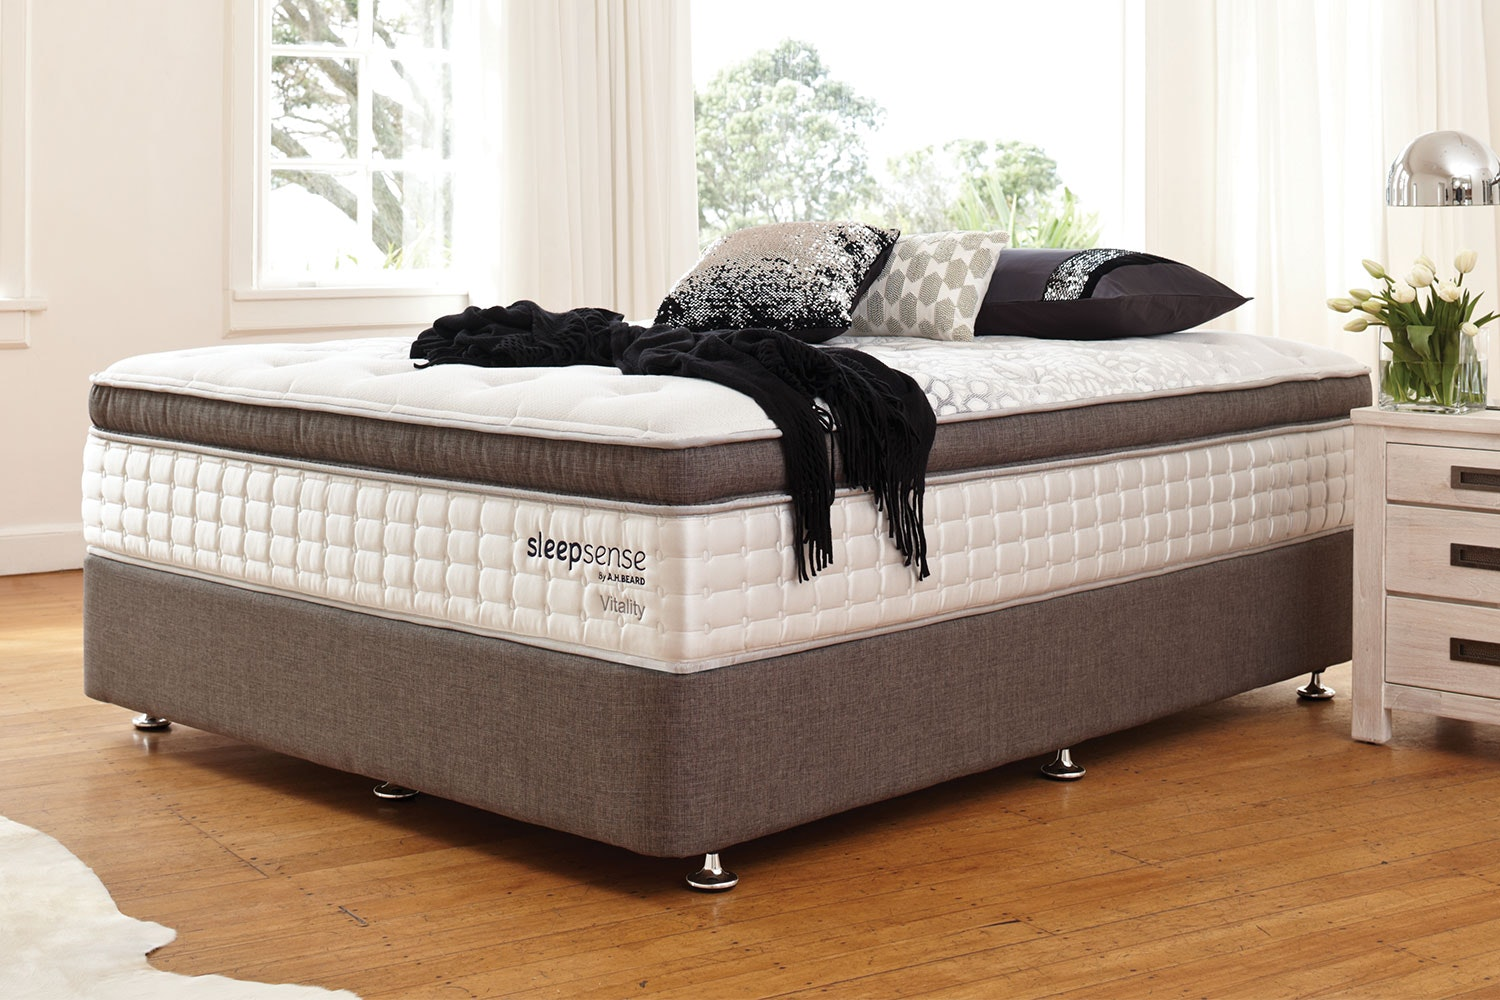 Vitality Super King Bed by Sleepsense